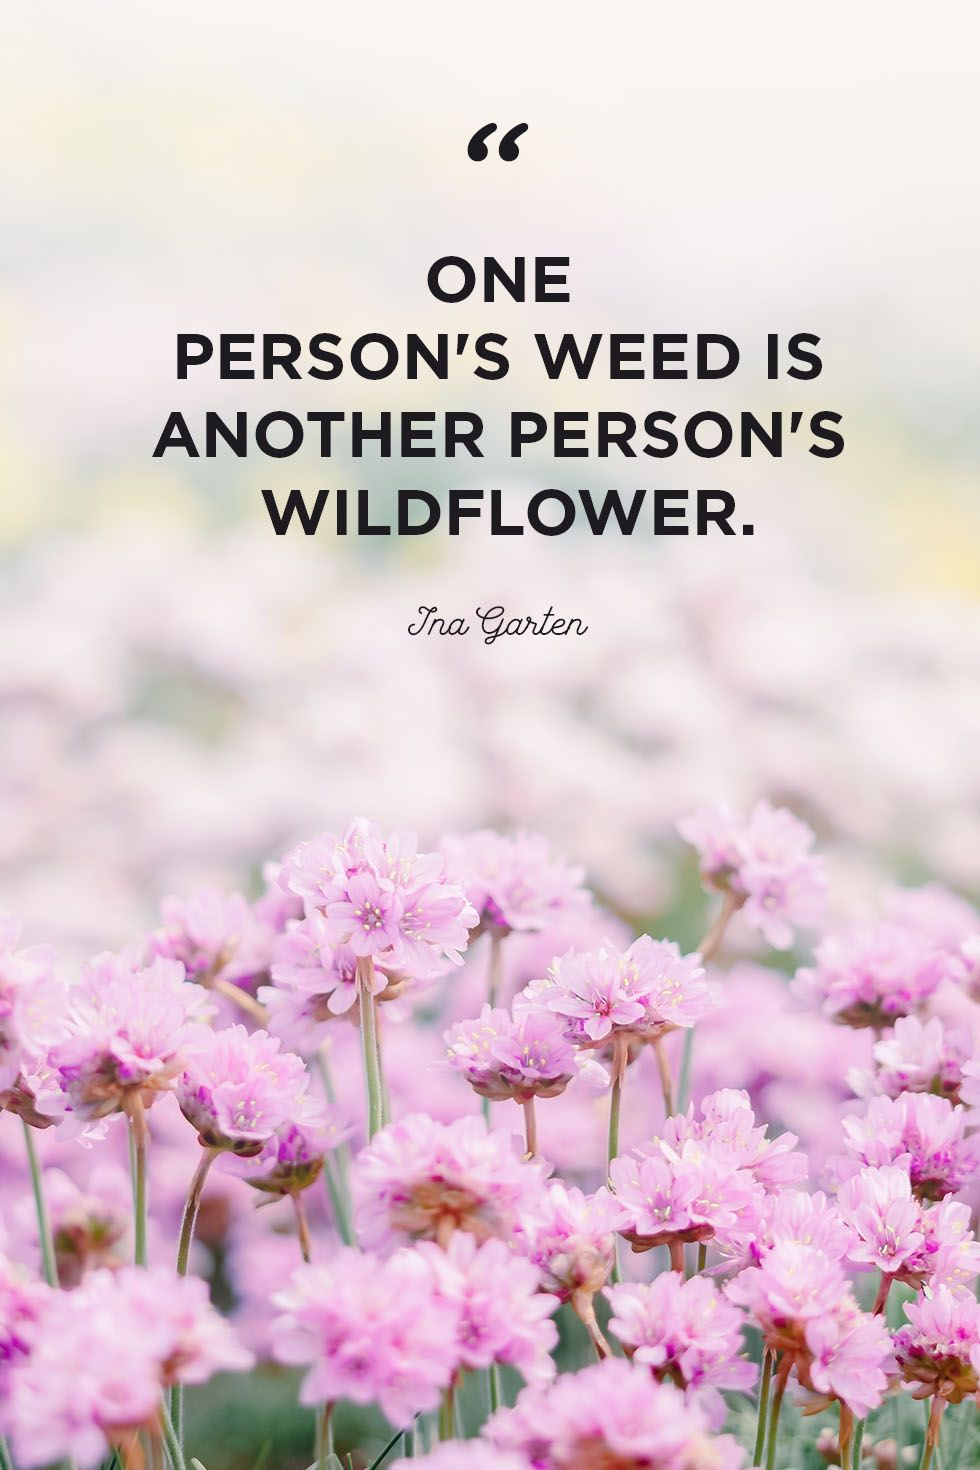 30 Inspirational Flower Quotes - Cute Flower Sayings About